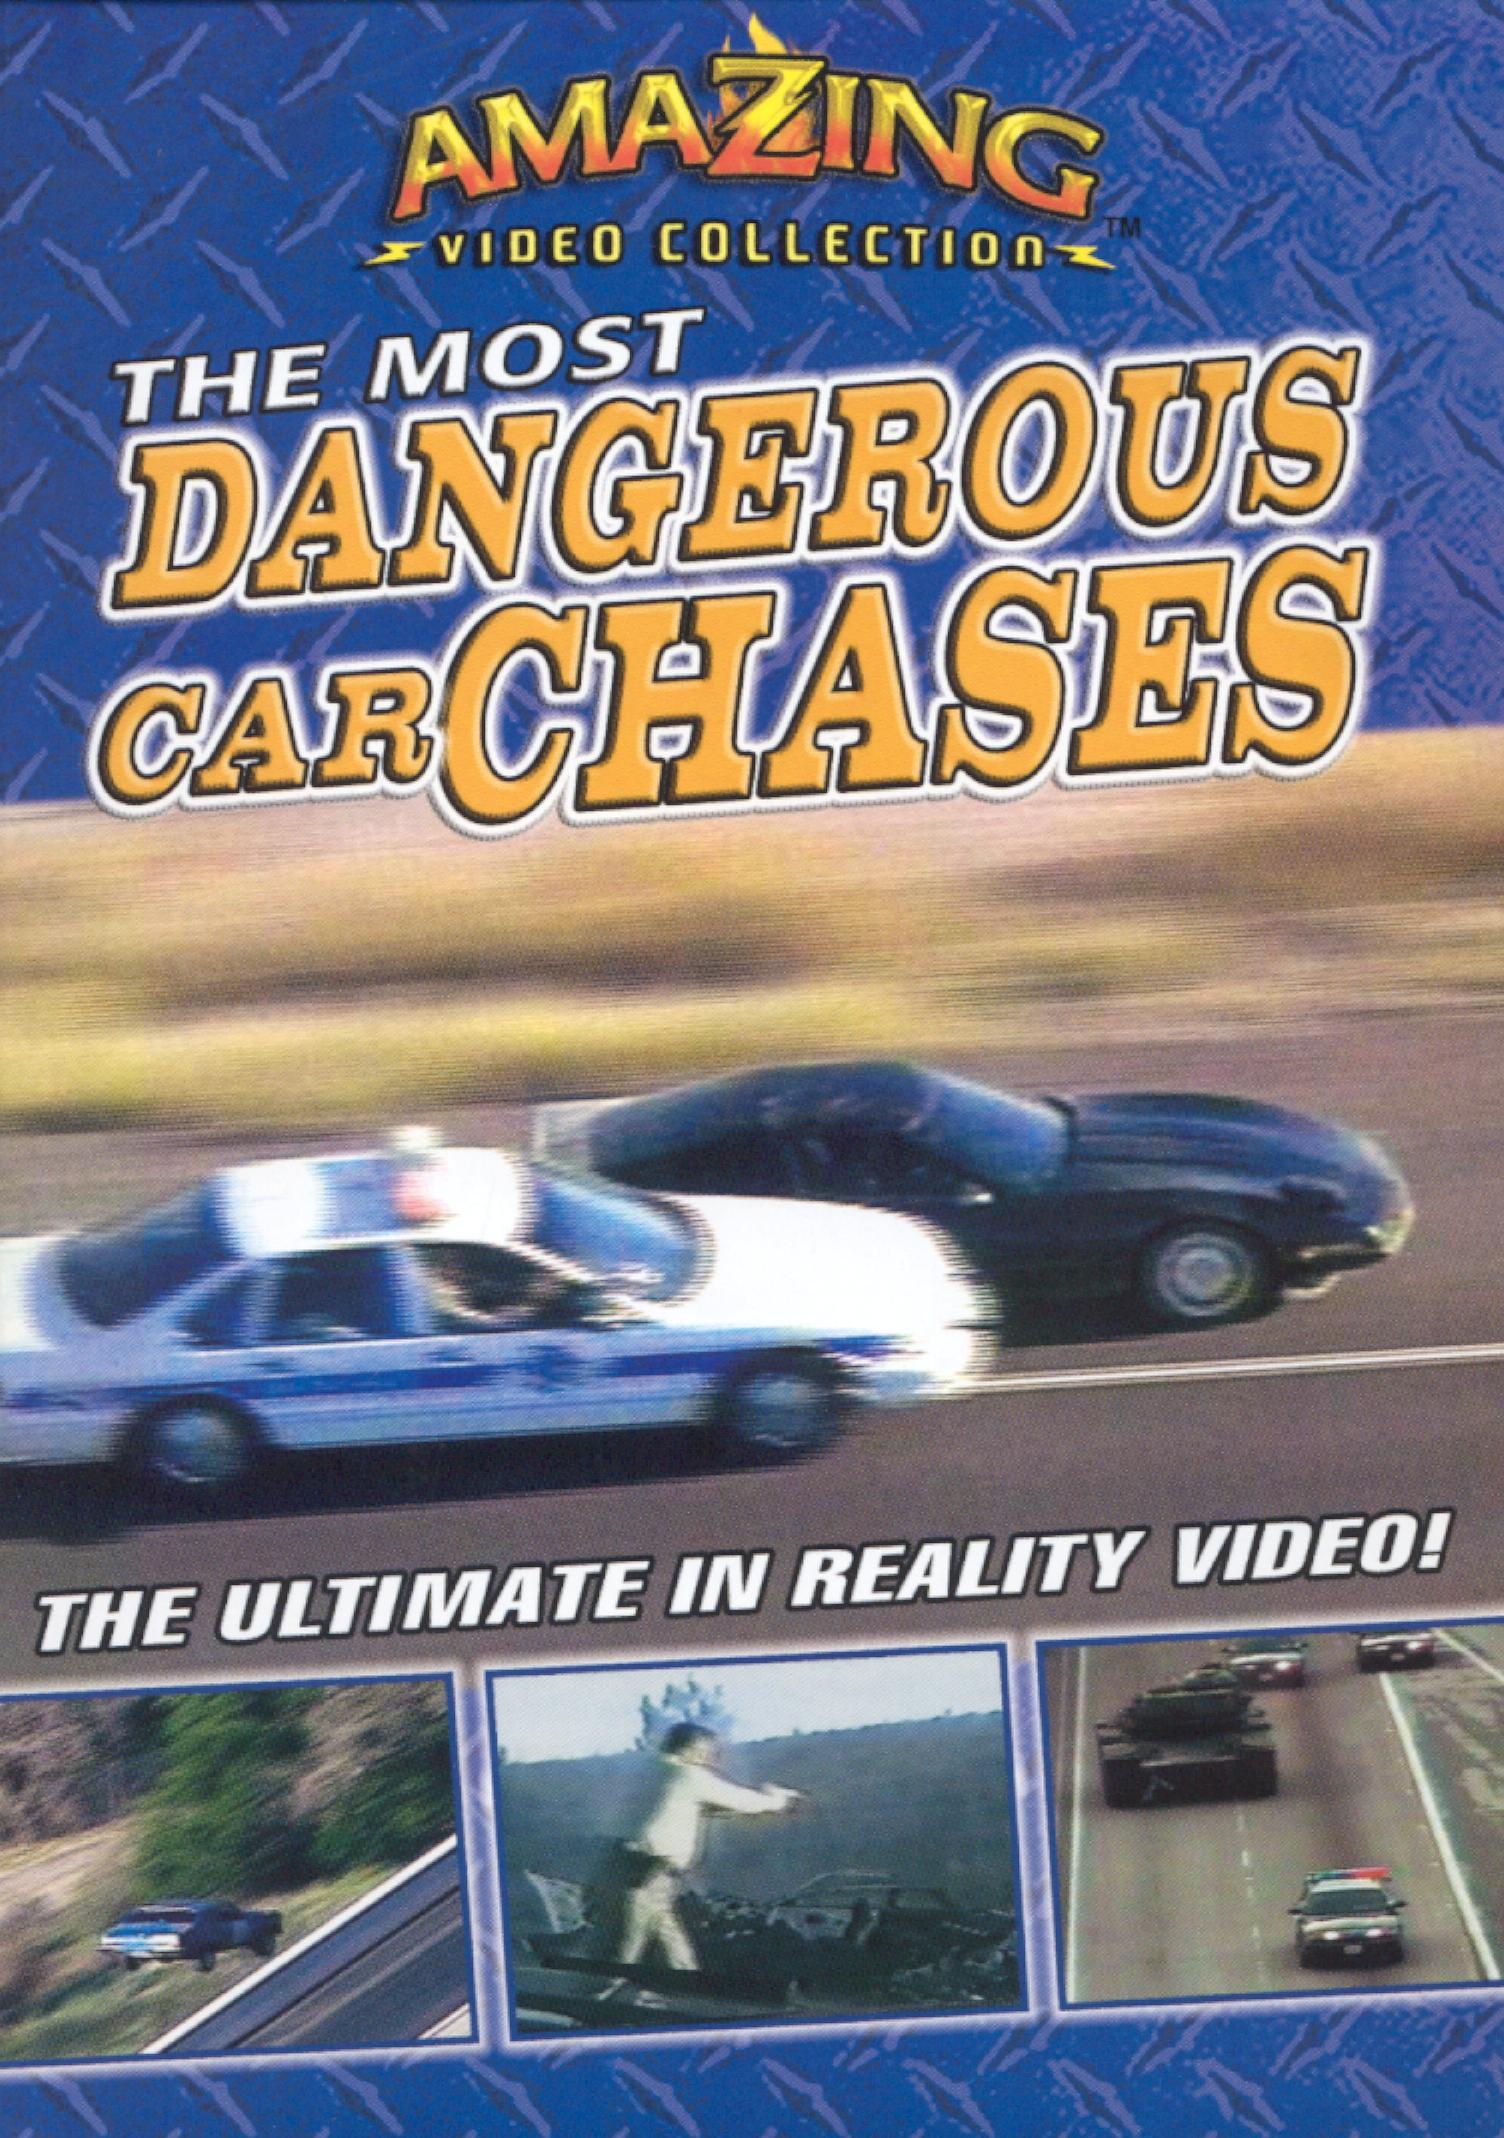 Amazing Video Collection: Most Dangerous Car Chases